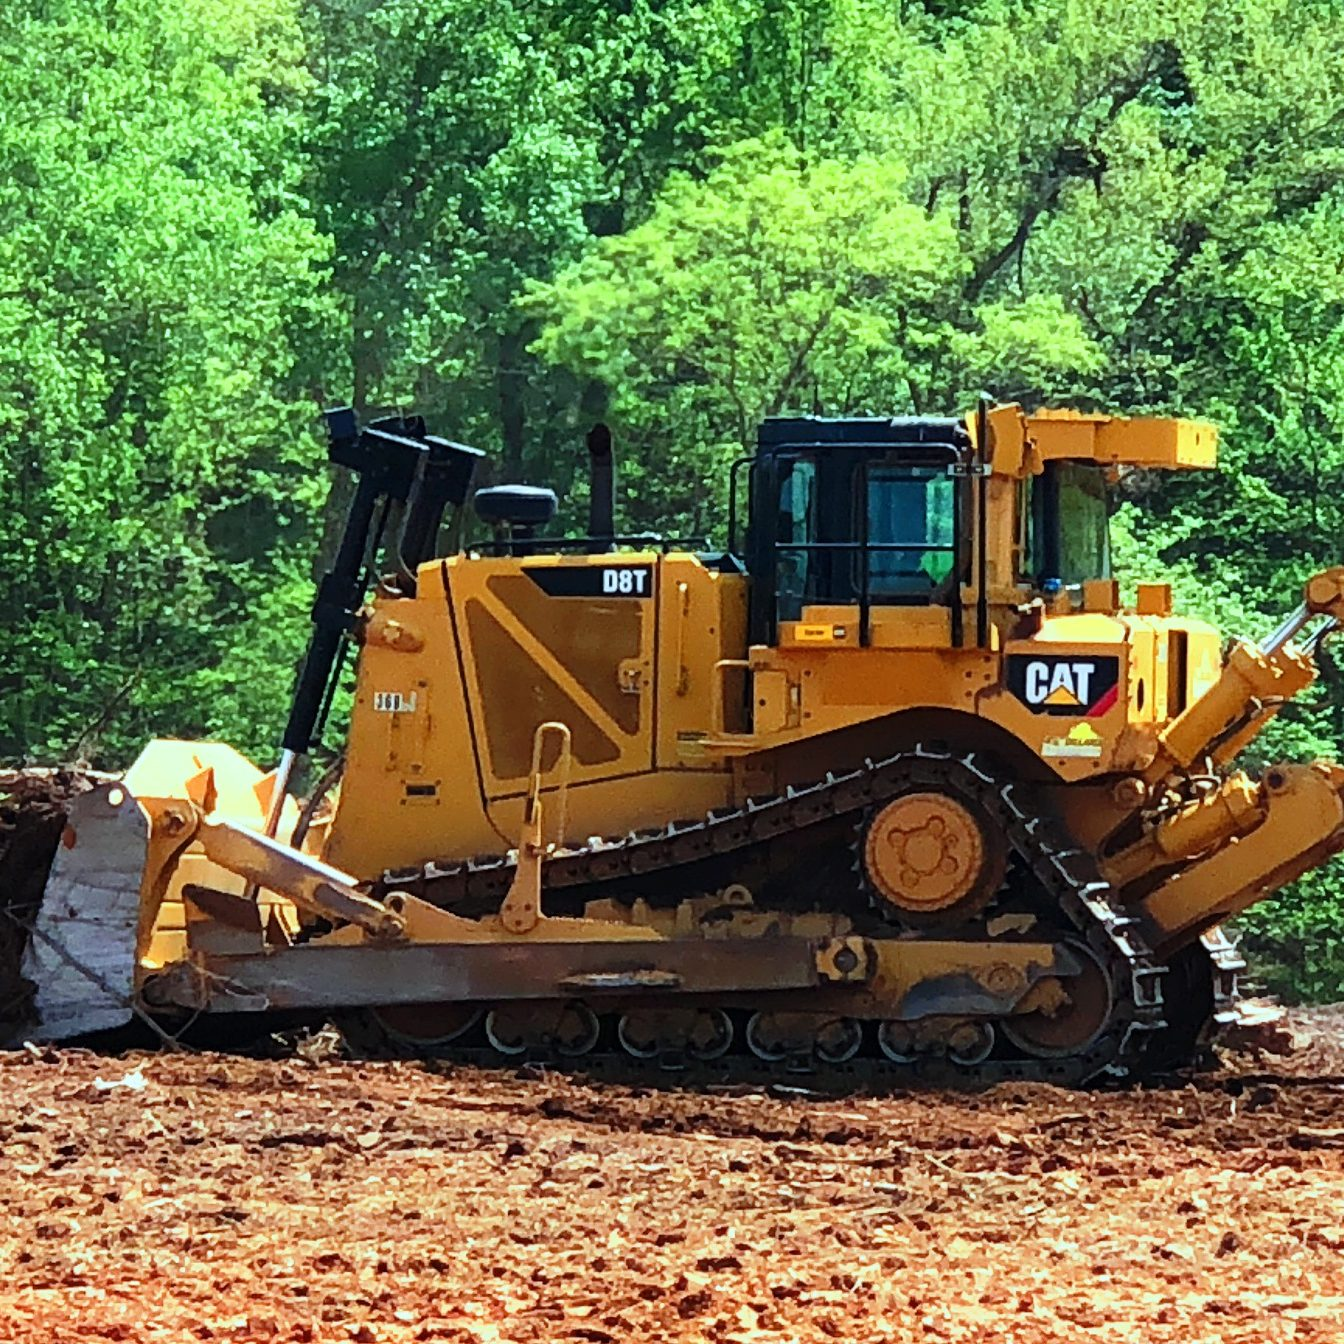 Cat D 8 In action